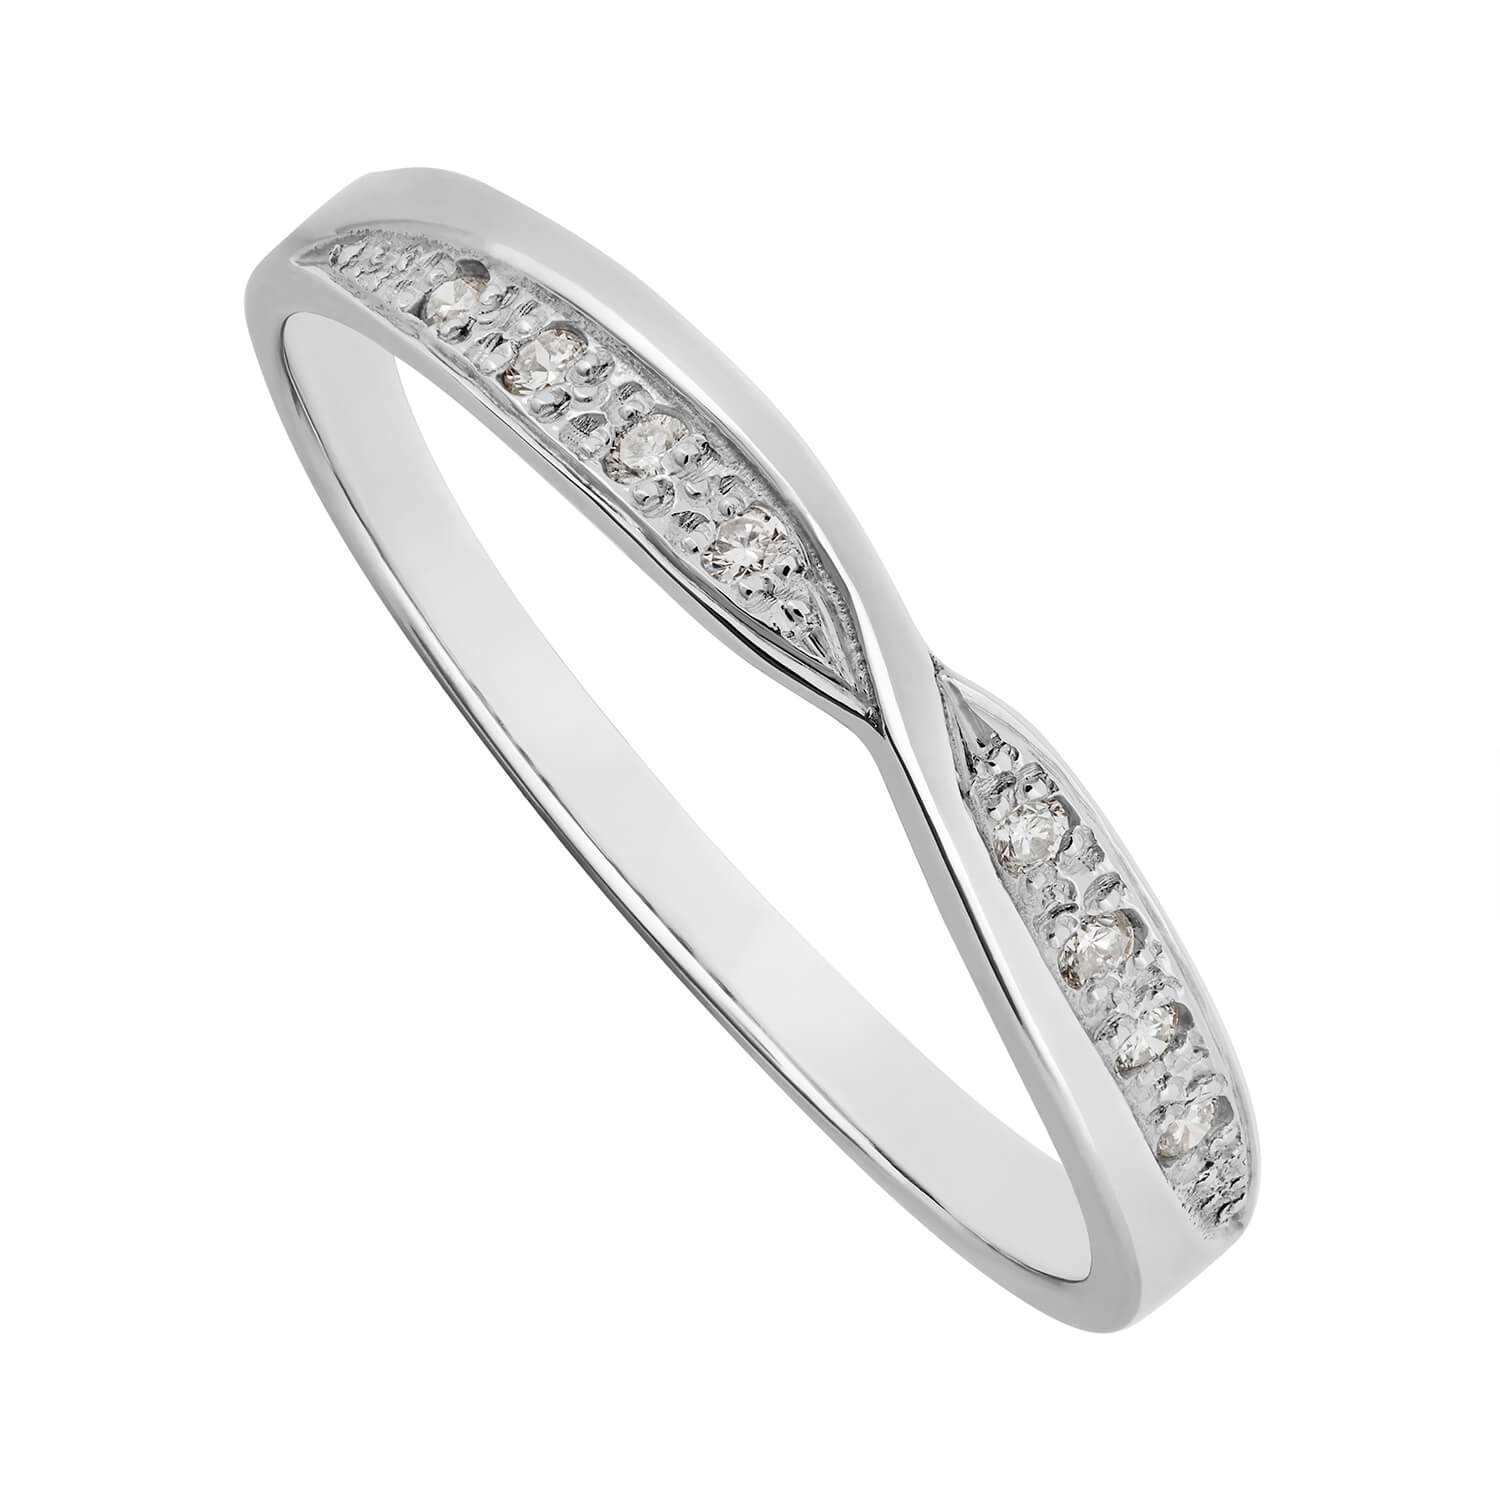 Ladies' 18ct white gold diamond shaped crossover wedding ring